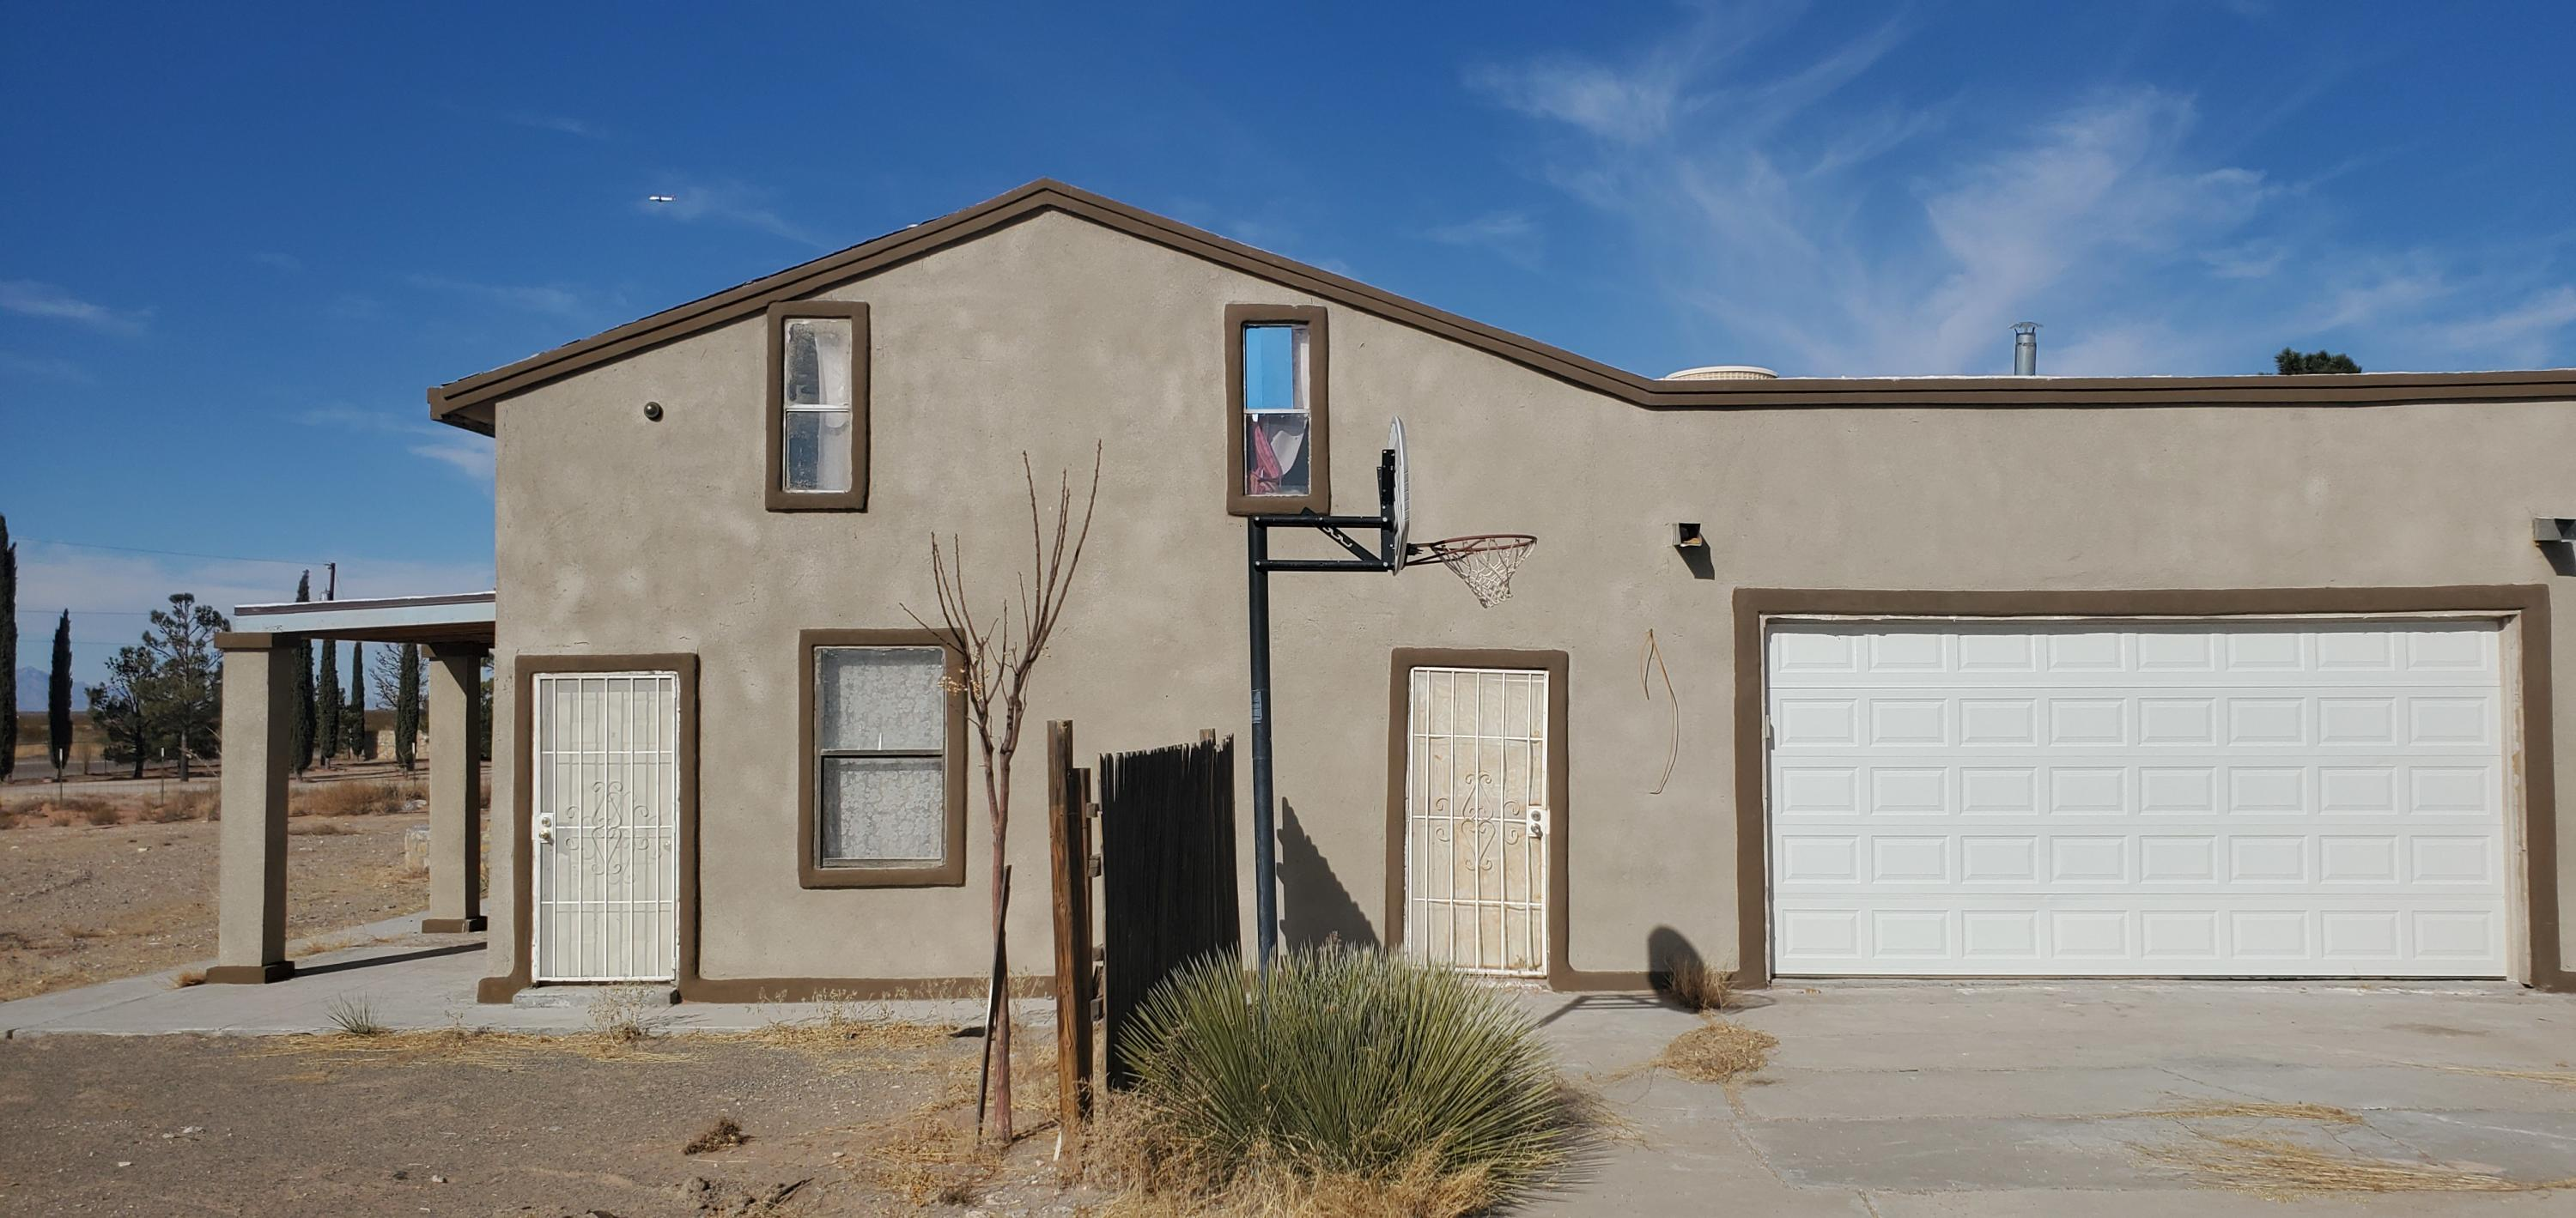 14901 FERGUSON Drive, El Paso, Texas 79938, ,Multi-family,For sale,FERGUSON,839755